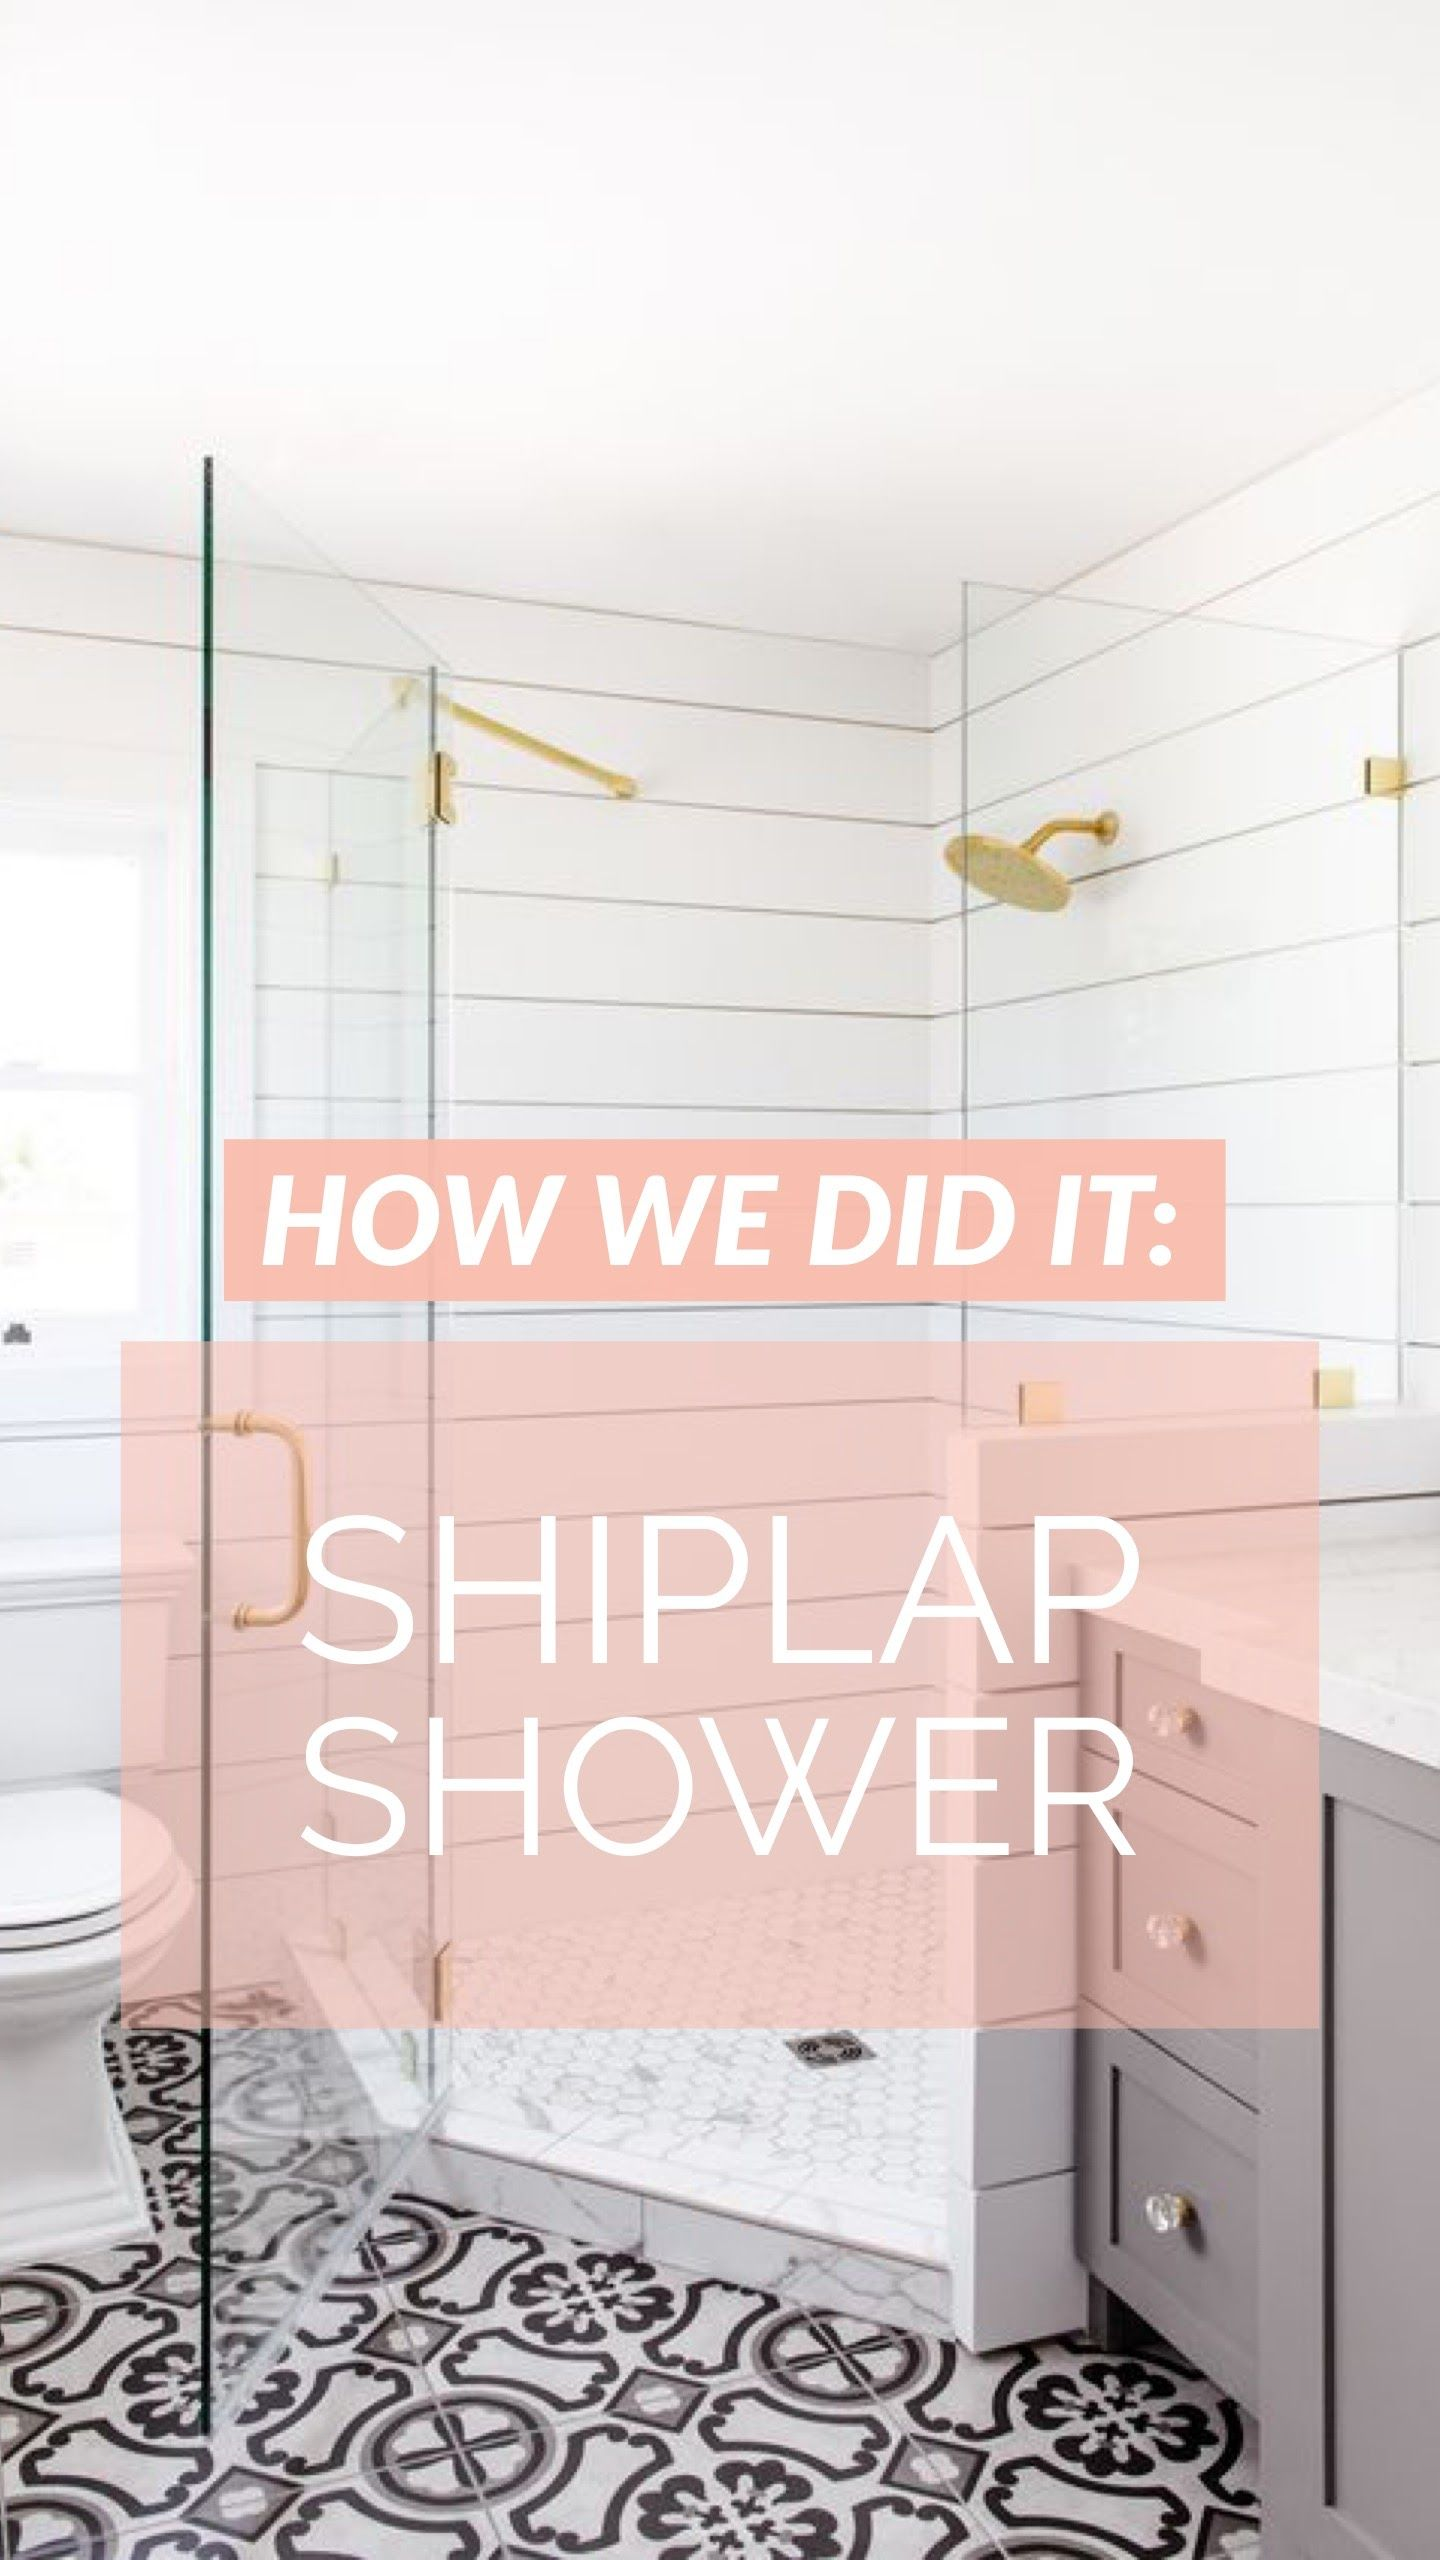 How We Did It Shiplap Shower Savvy Interiors Shiplap Shower Shower Remodel Bathroom Shower Walls